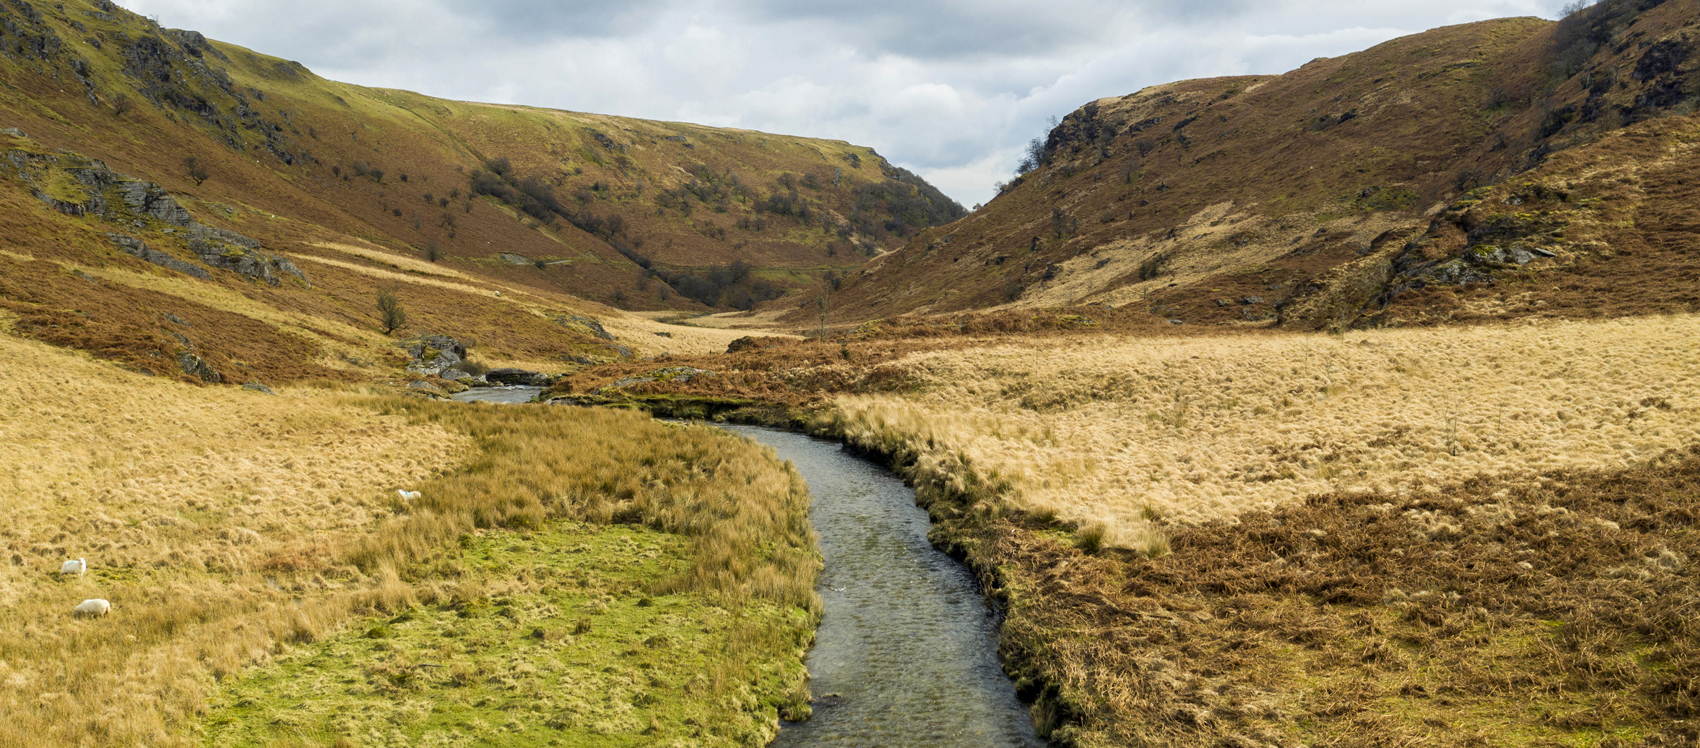 Restoring Water Quality in the Upper Wye & Irfon